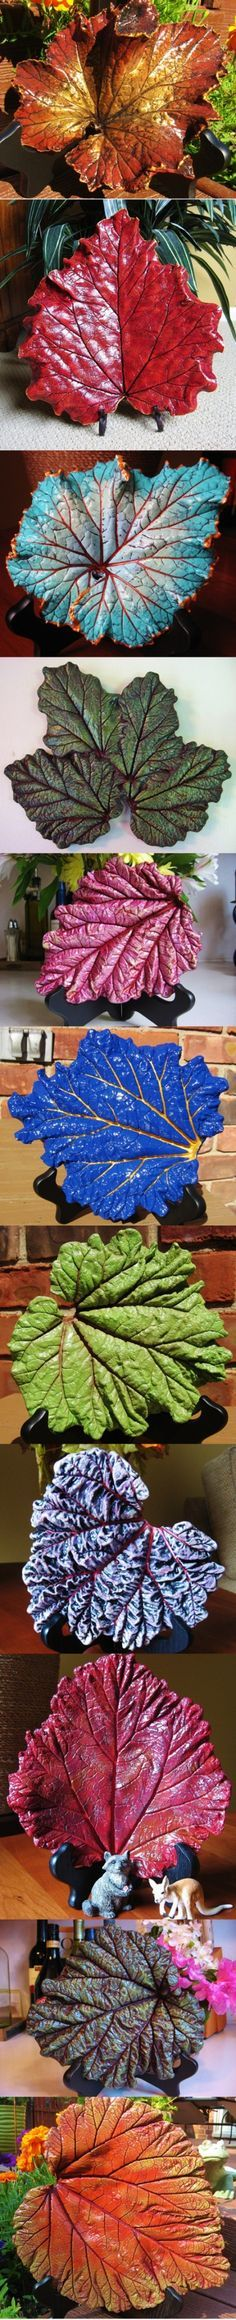 Concrete leaf castings made from real leaves. They are all hand filed and hand painted.: